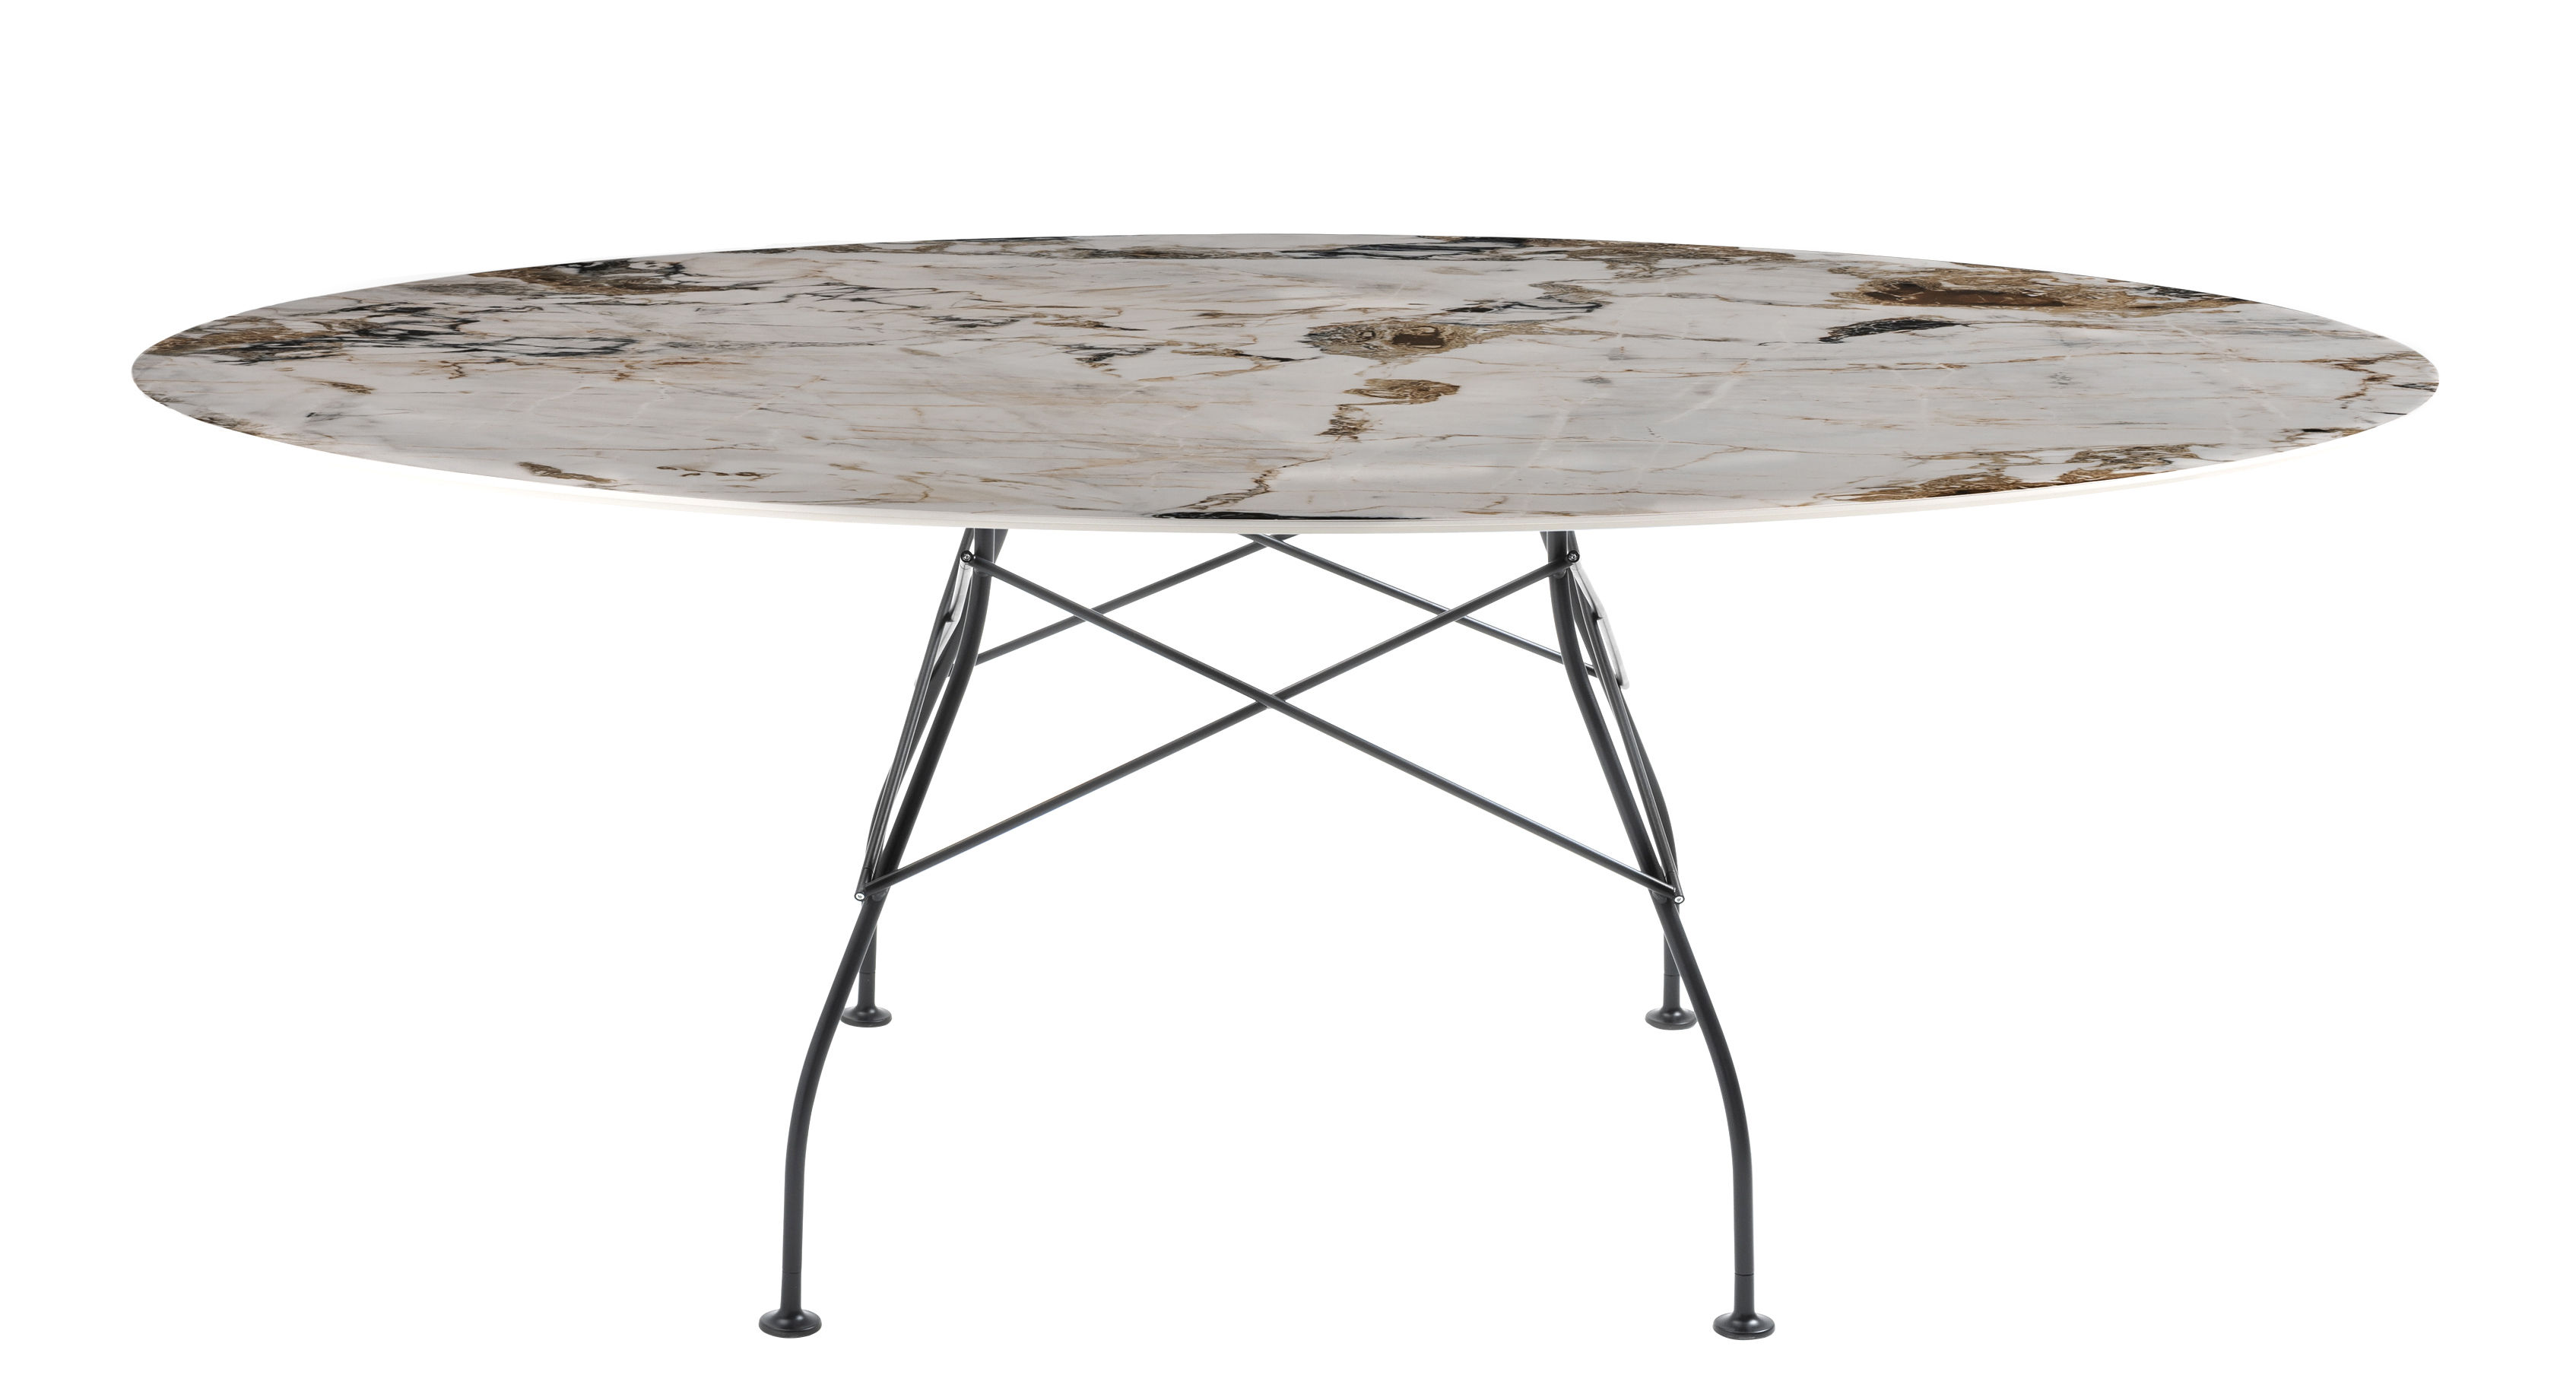 Furniture - Dining Tables - Glossy Marble Oval table - / 192 x 118 cm - Marble-effect sandstone by Kartell - Brown & beige tones / Black leg - Lacquered steel, Marble-effect sandstone